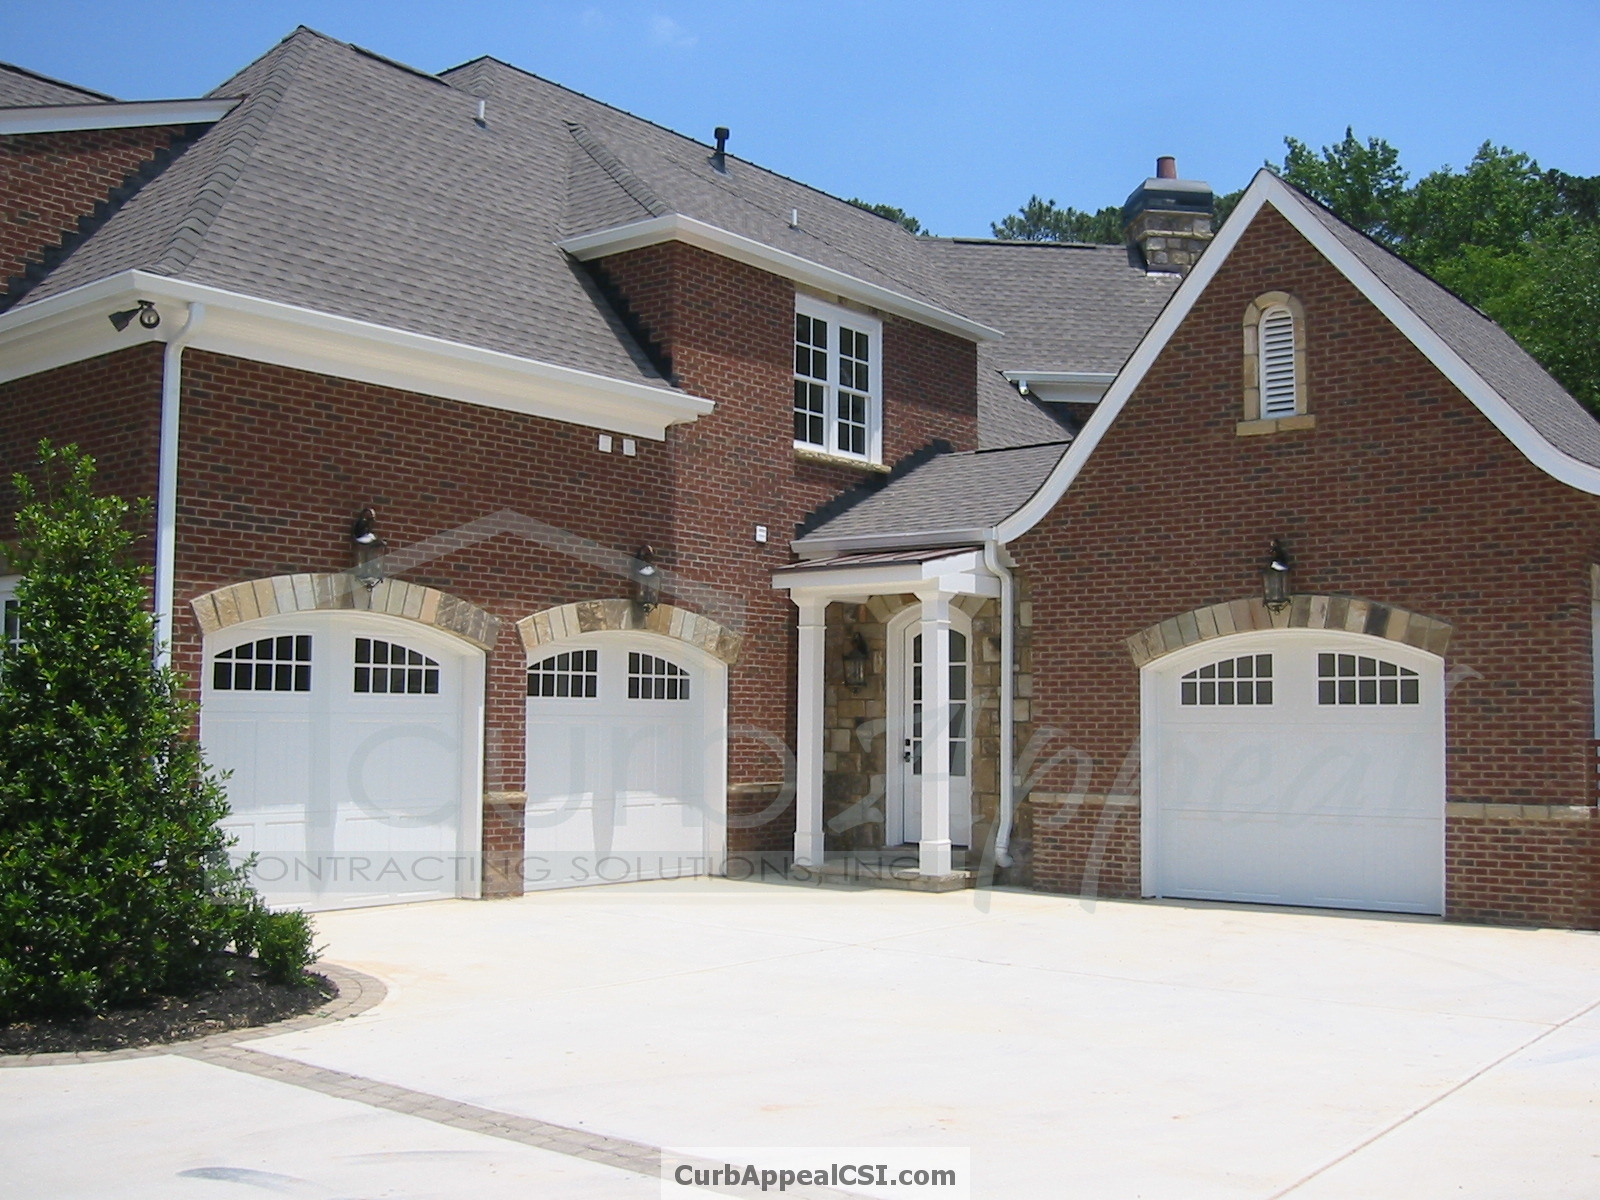 White Classica Garage Doors With Arched Glazed Tops Curb